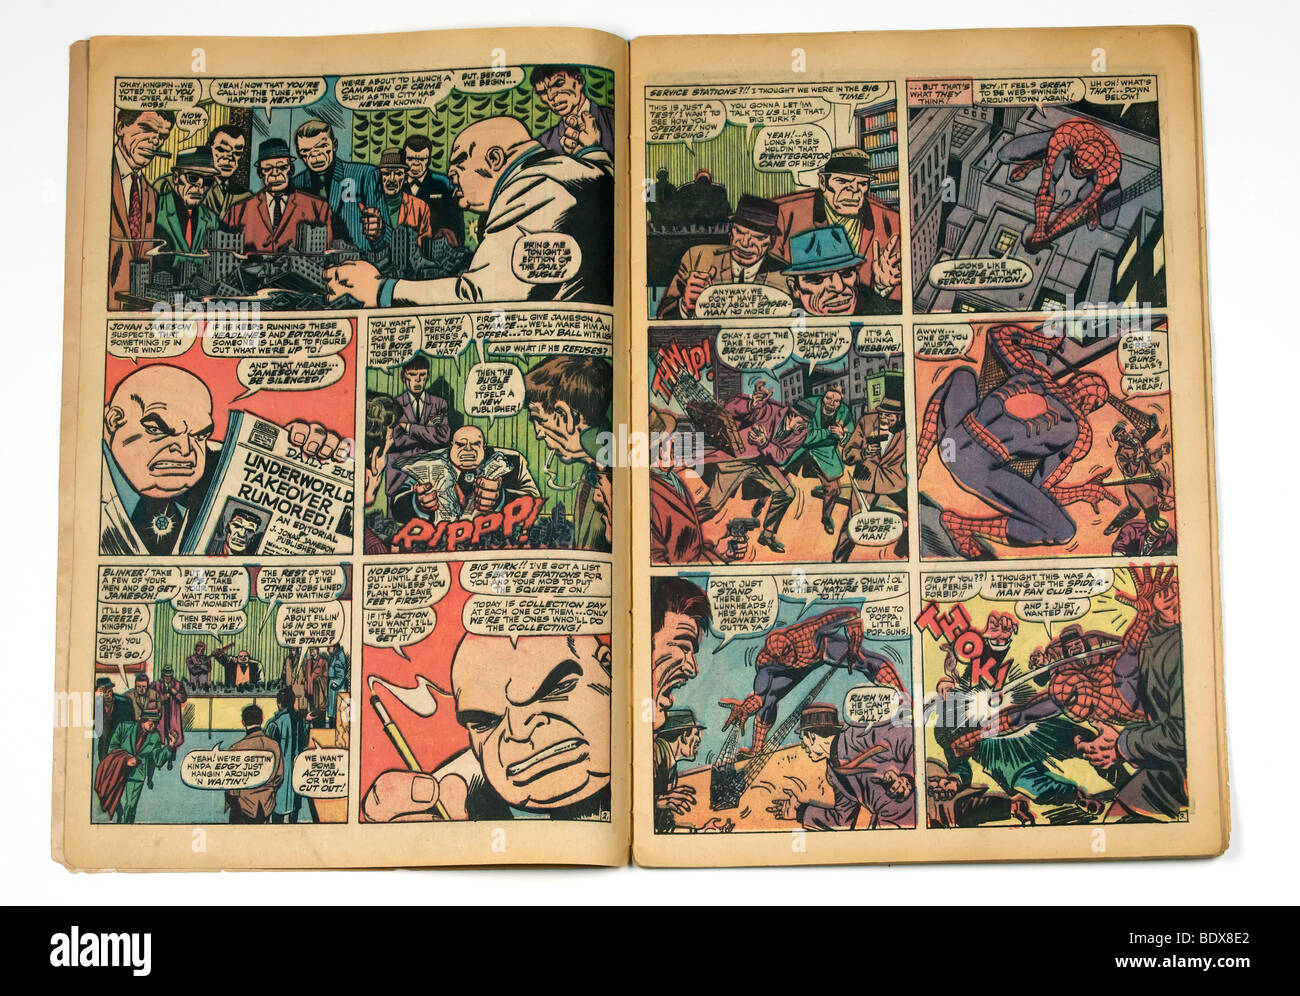 The inside pages of a spider-man comic book - Stock Image